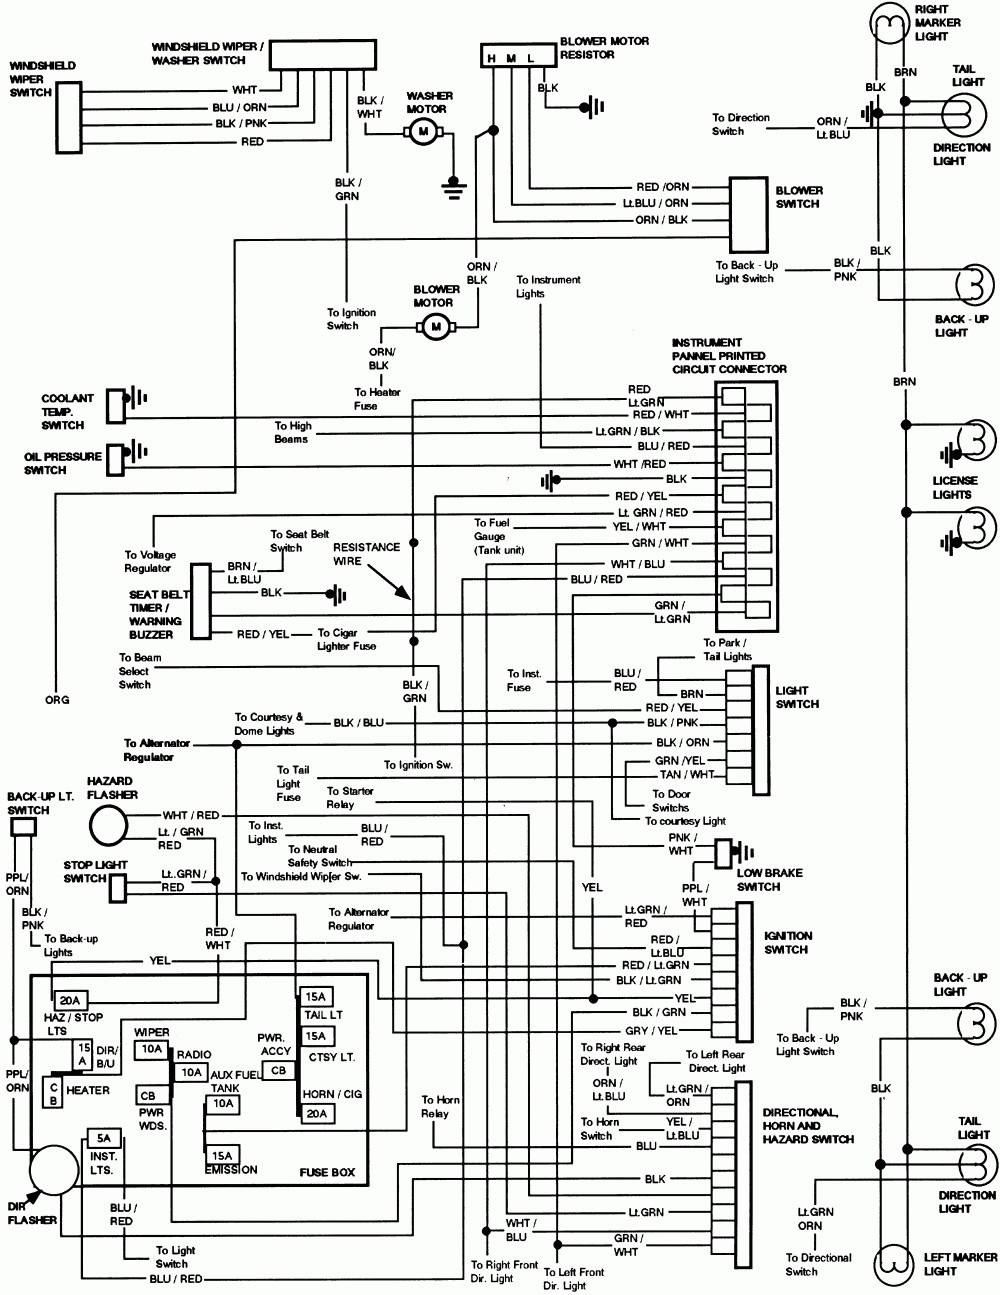 medium resolution of 1989 ford f 350 wiring diagram wiring diagram schema1989 f350 wiring diagram schema diagram database 1989